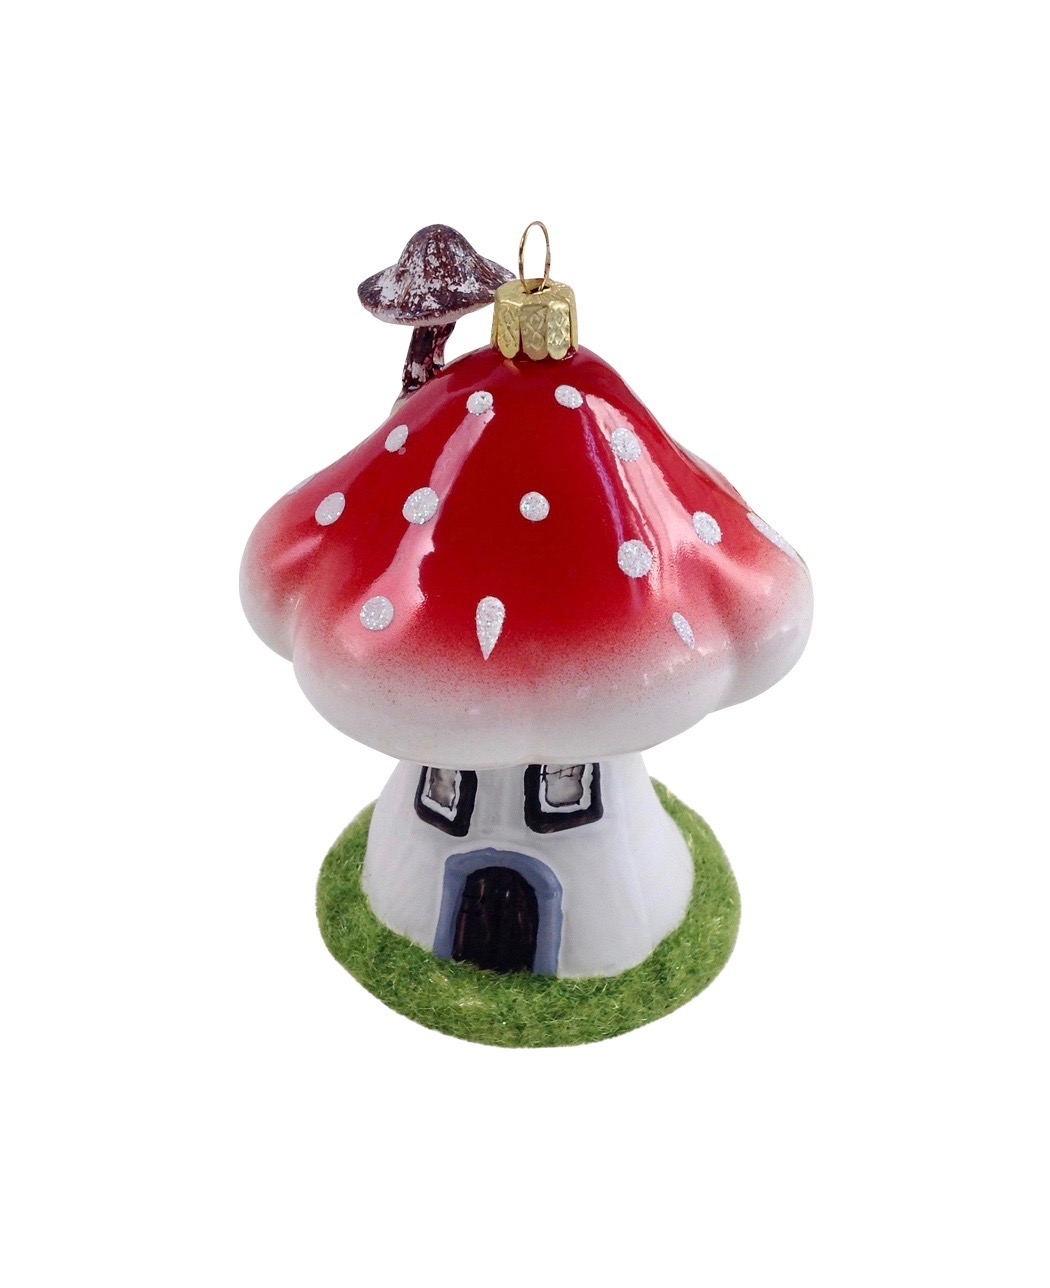 Red mushroom ornament go home modern decor gifts for Contemporary ornaments for the home